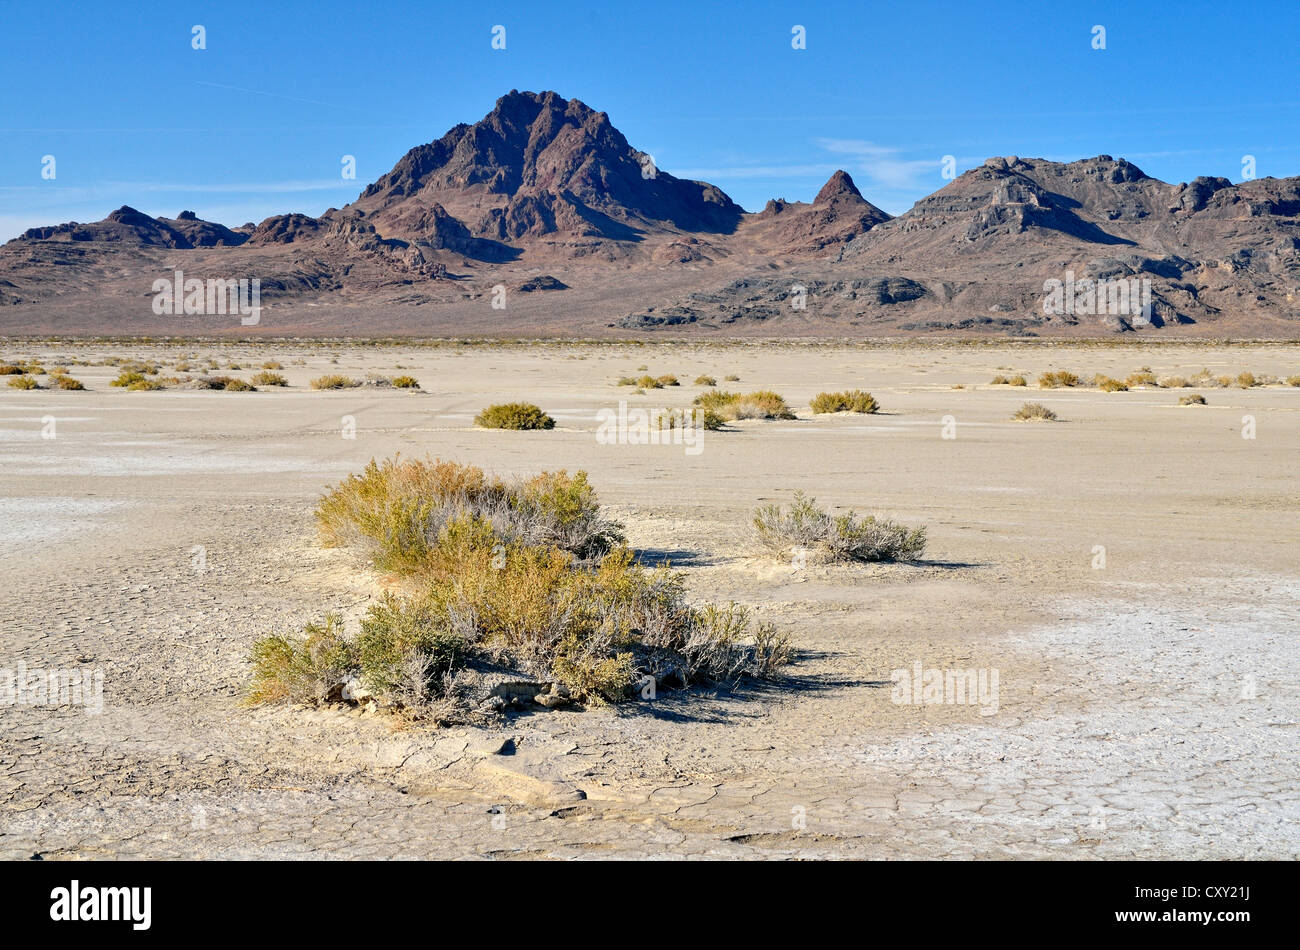 Salt flats at the Bonneville Speedway, Great Salt Lake Desert, Silver Island Mountains at back, Wendover, Utah, - Stock Image